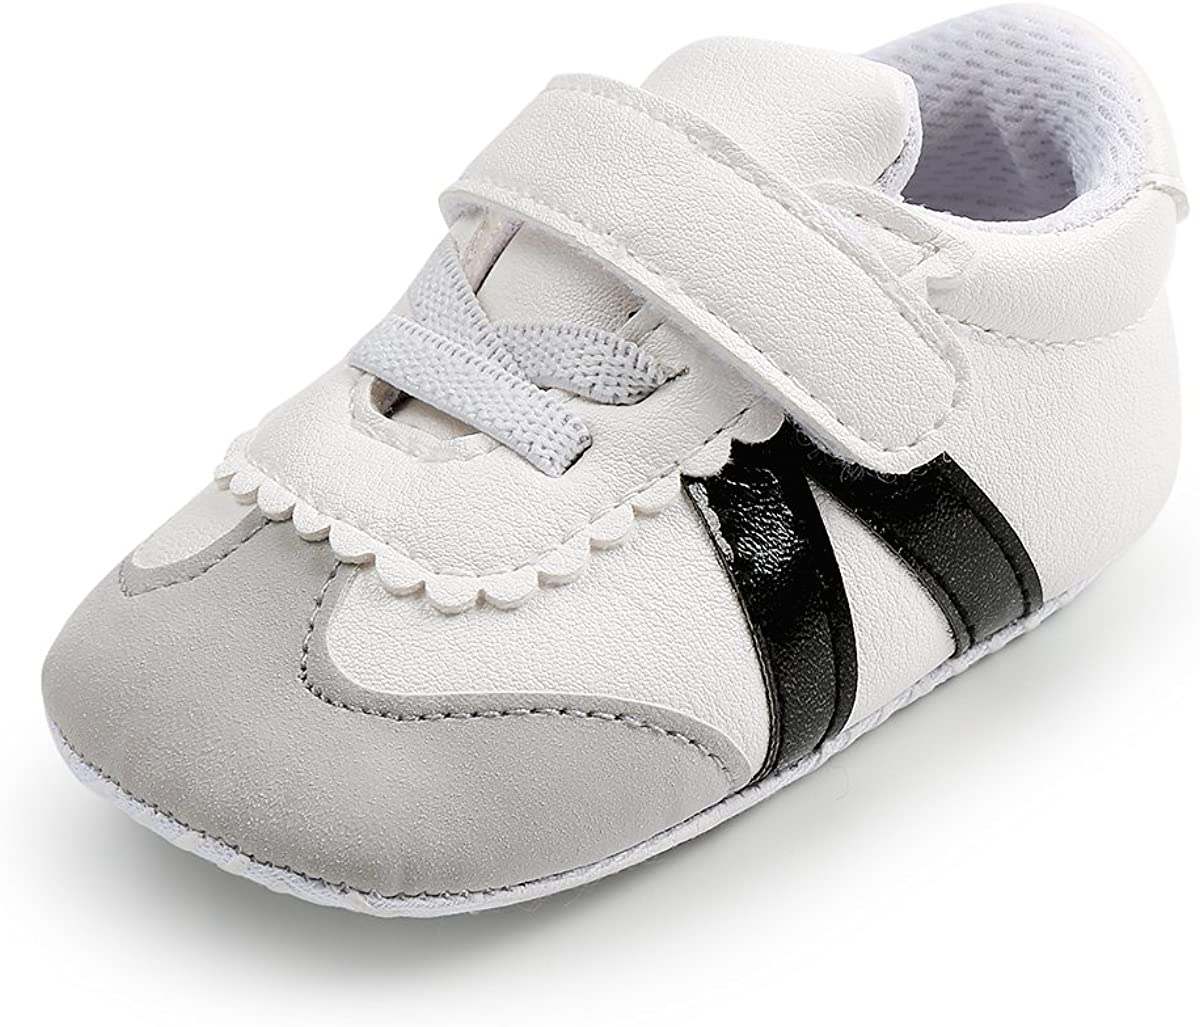 size 18 baby shoes age